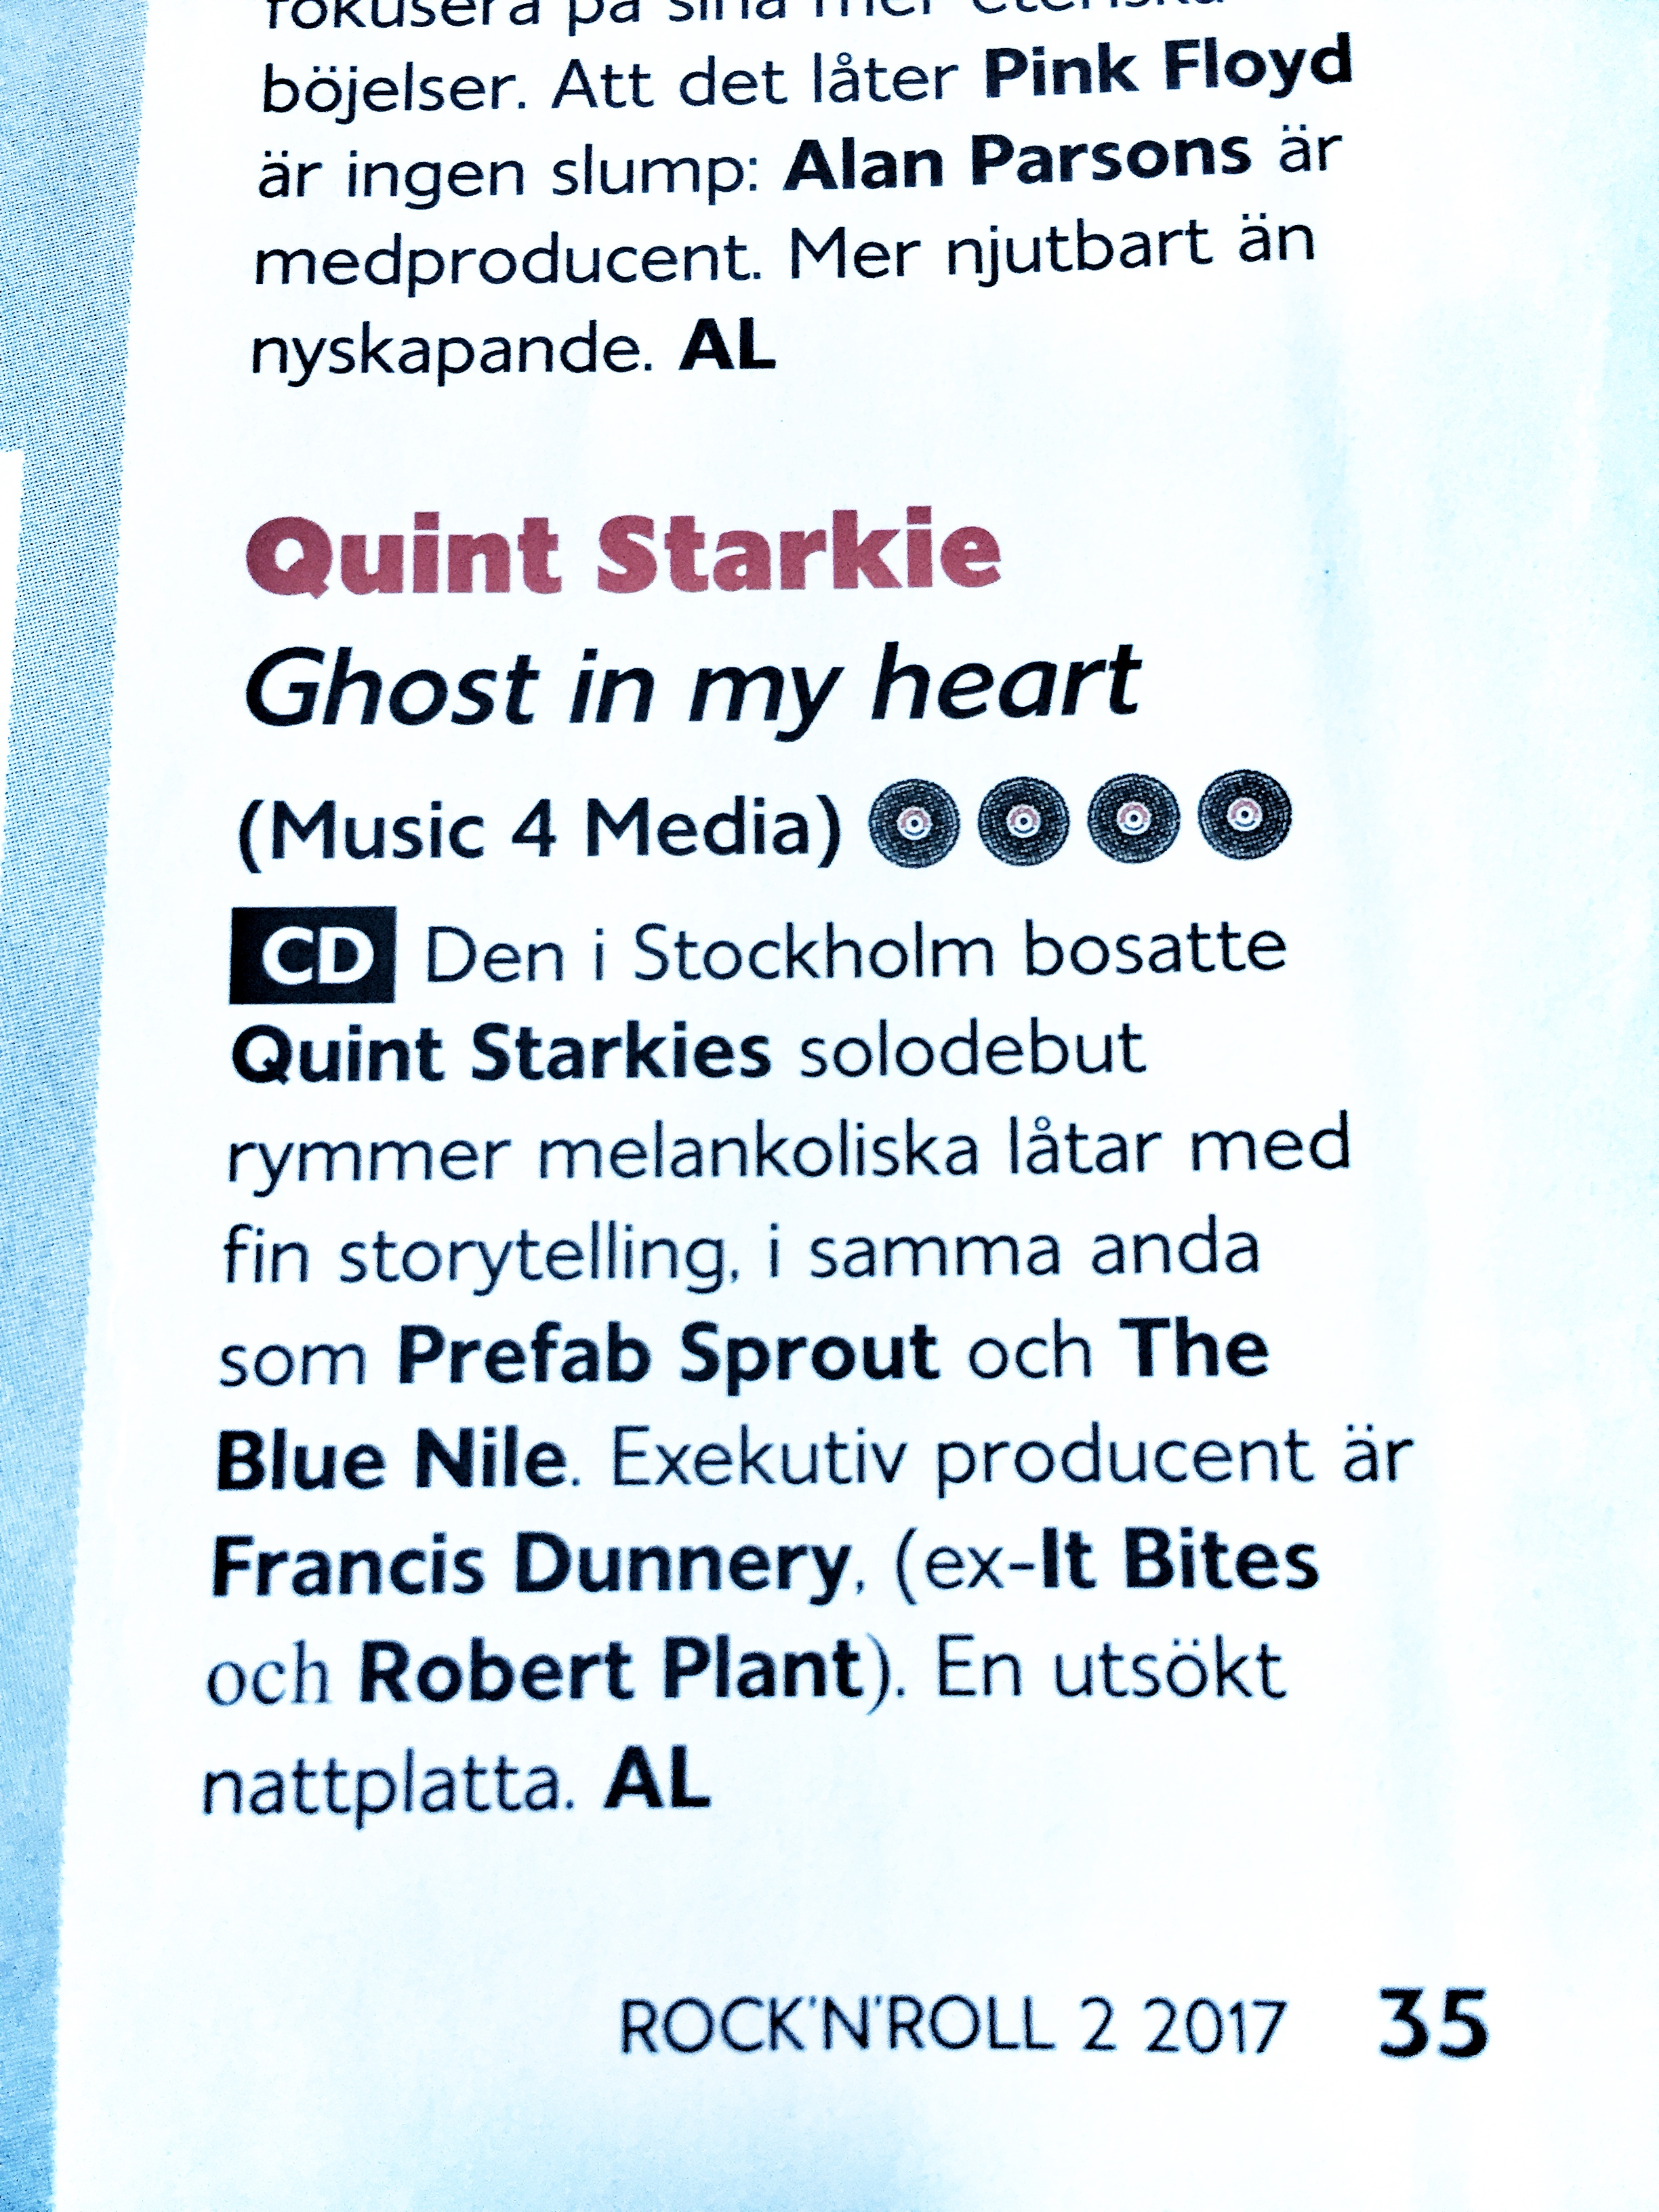 "First review of my album by Anders Lundquist published in Sweden's Rock n Roll magazine....    Translation...  Stockholm based Quint Starkie's solo debut contains melancholy songs with fine storytelling in the same vein as Prefab Sprout and The Blue Nile. Executive Producer is Francis Dunnery (ex-It Bites & Robert Plant) ""A wonderful late night album"""